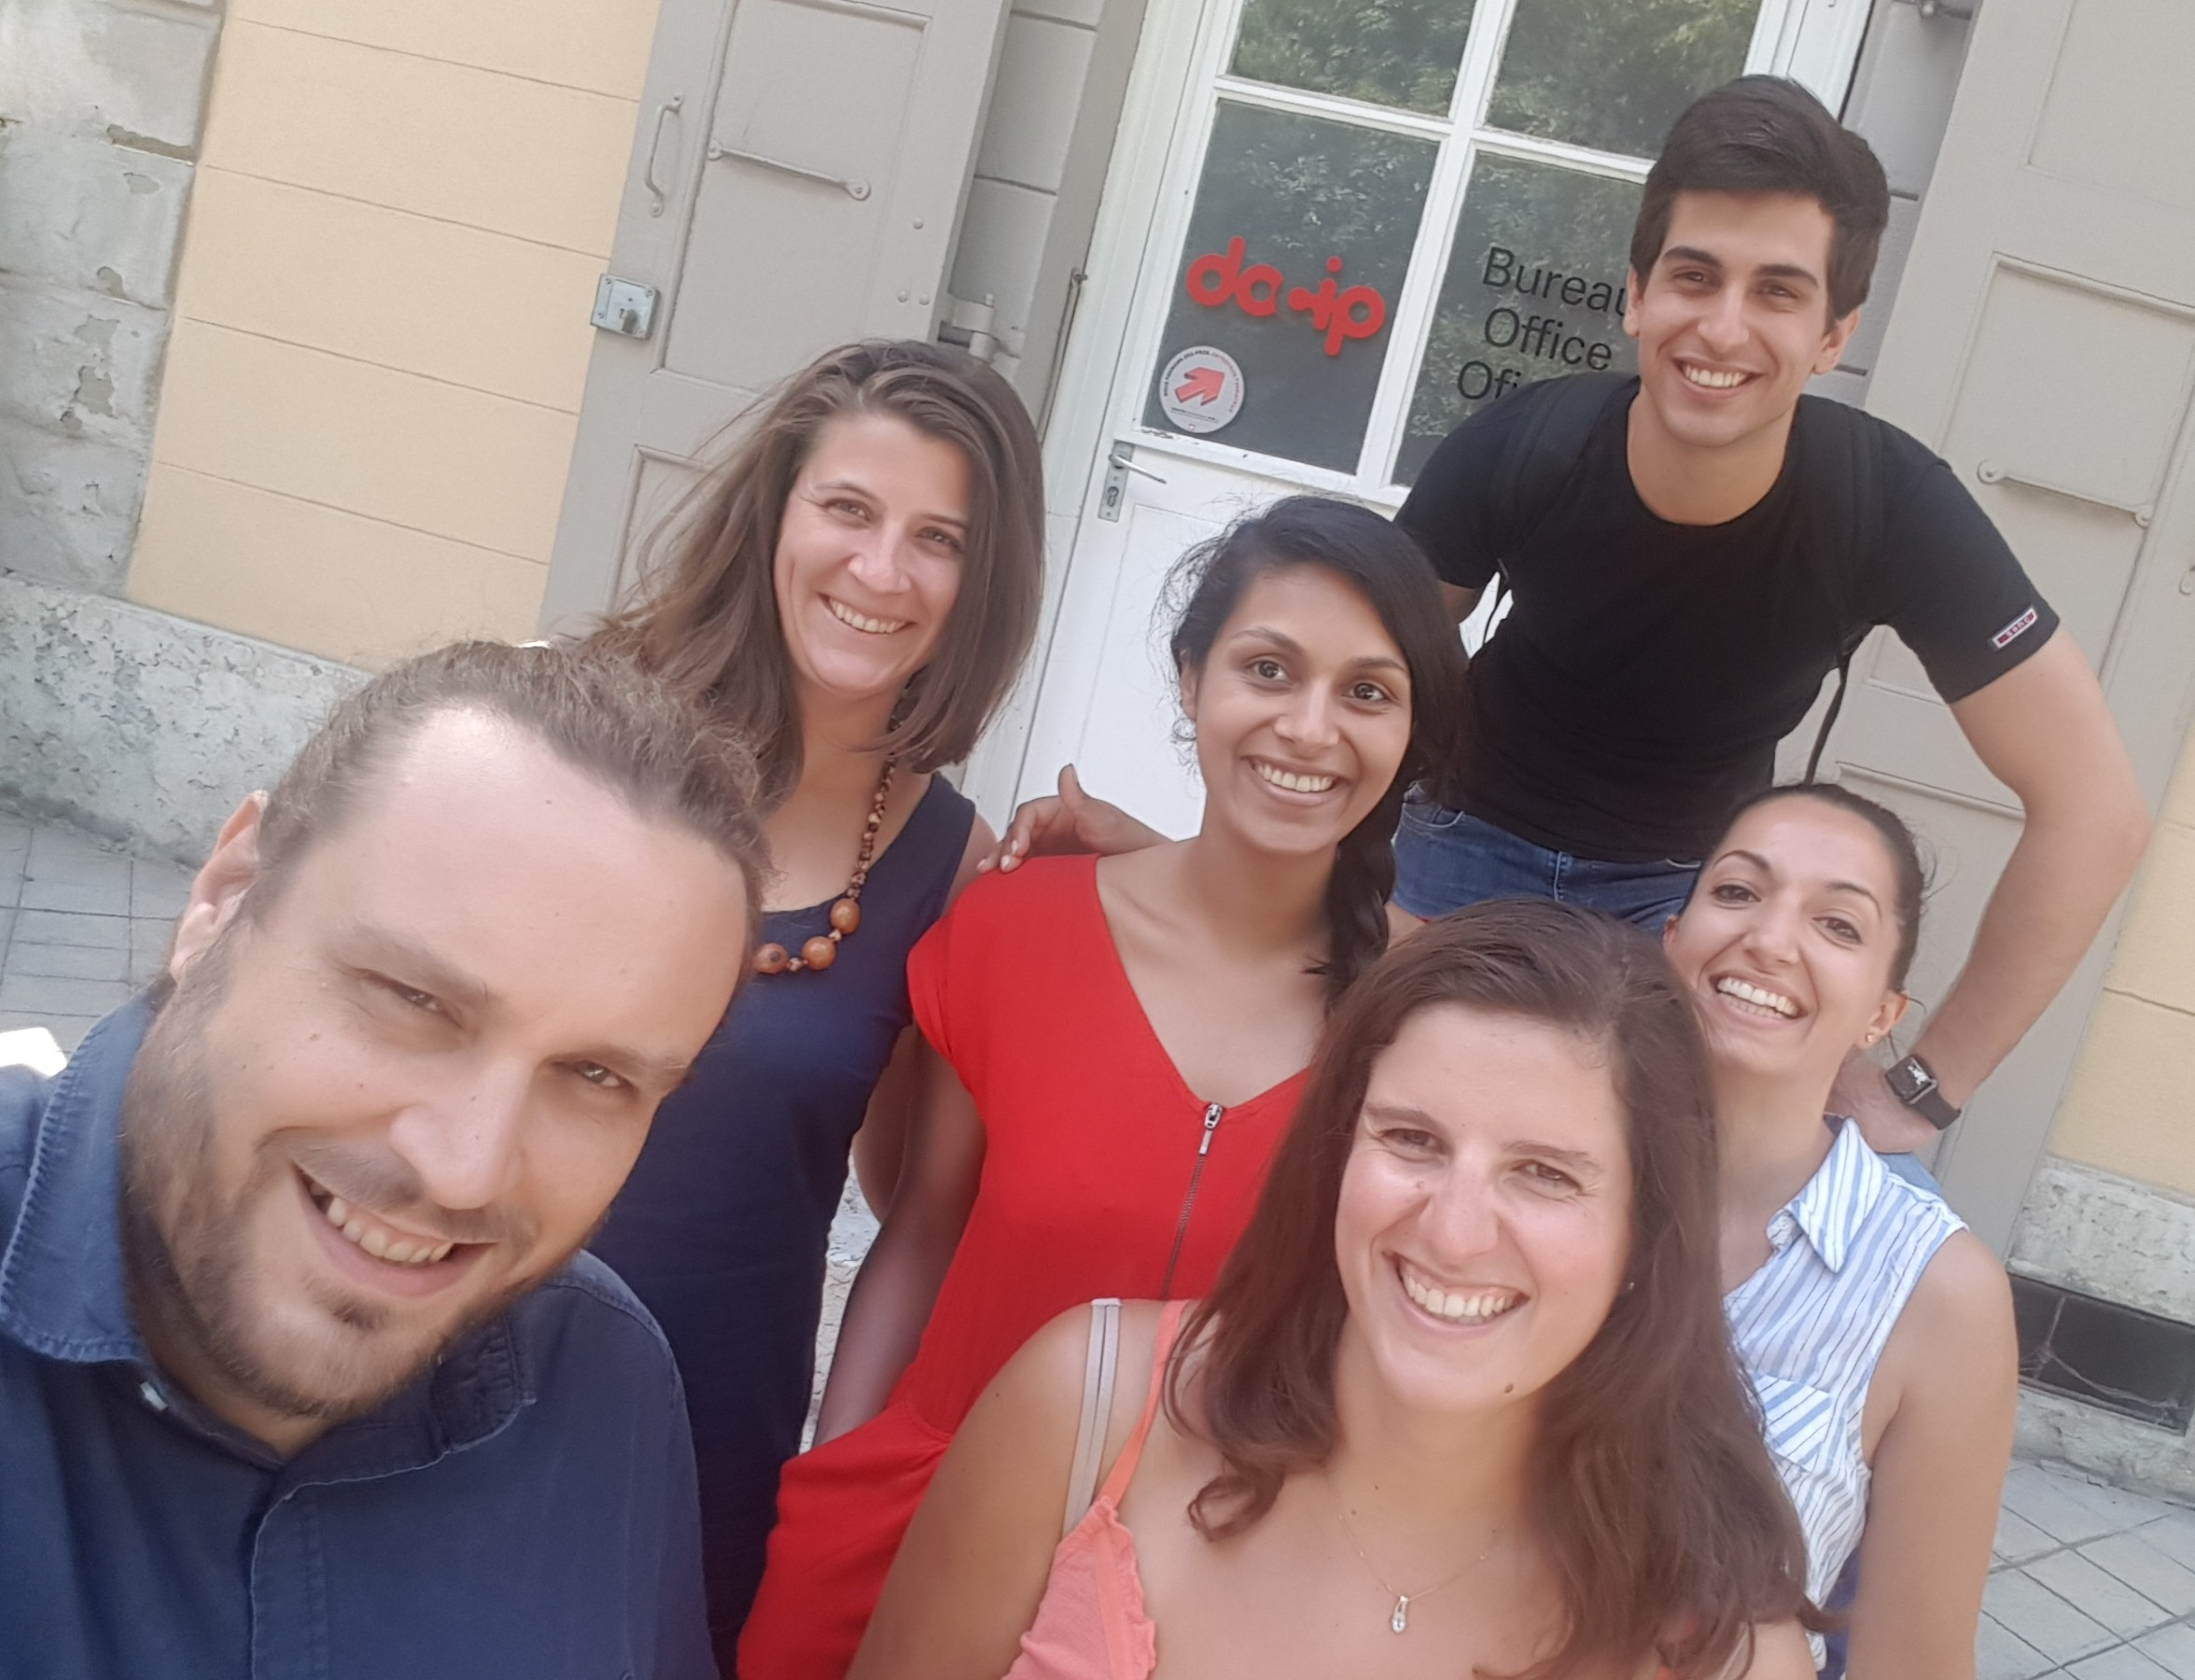 Photo of Rémi (left) with part of our team: Karen, Priscilla, Claire, Christian, and Johanna